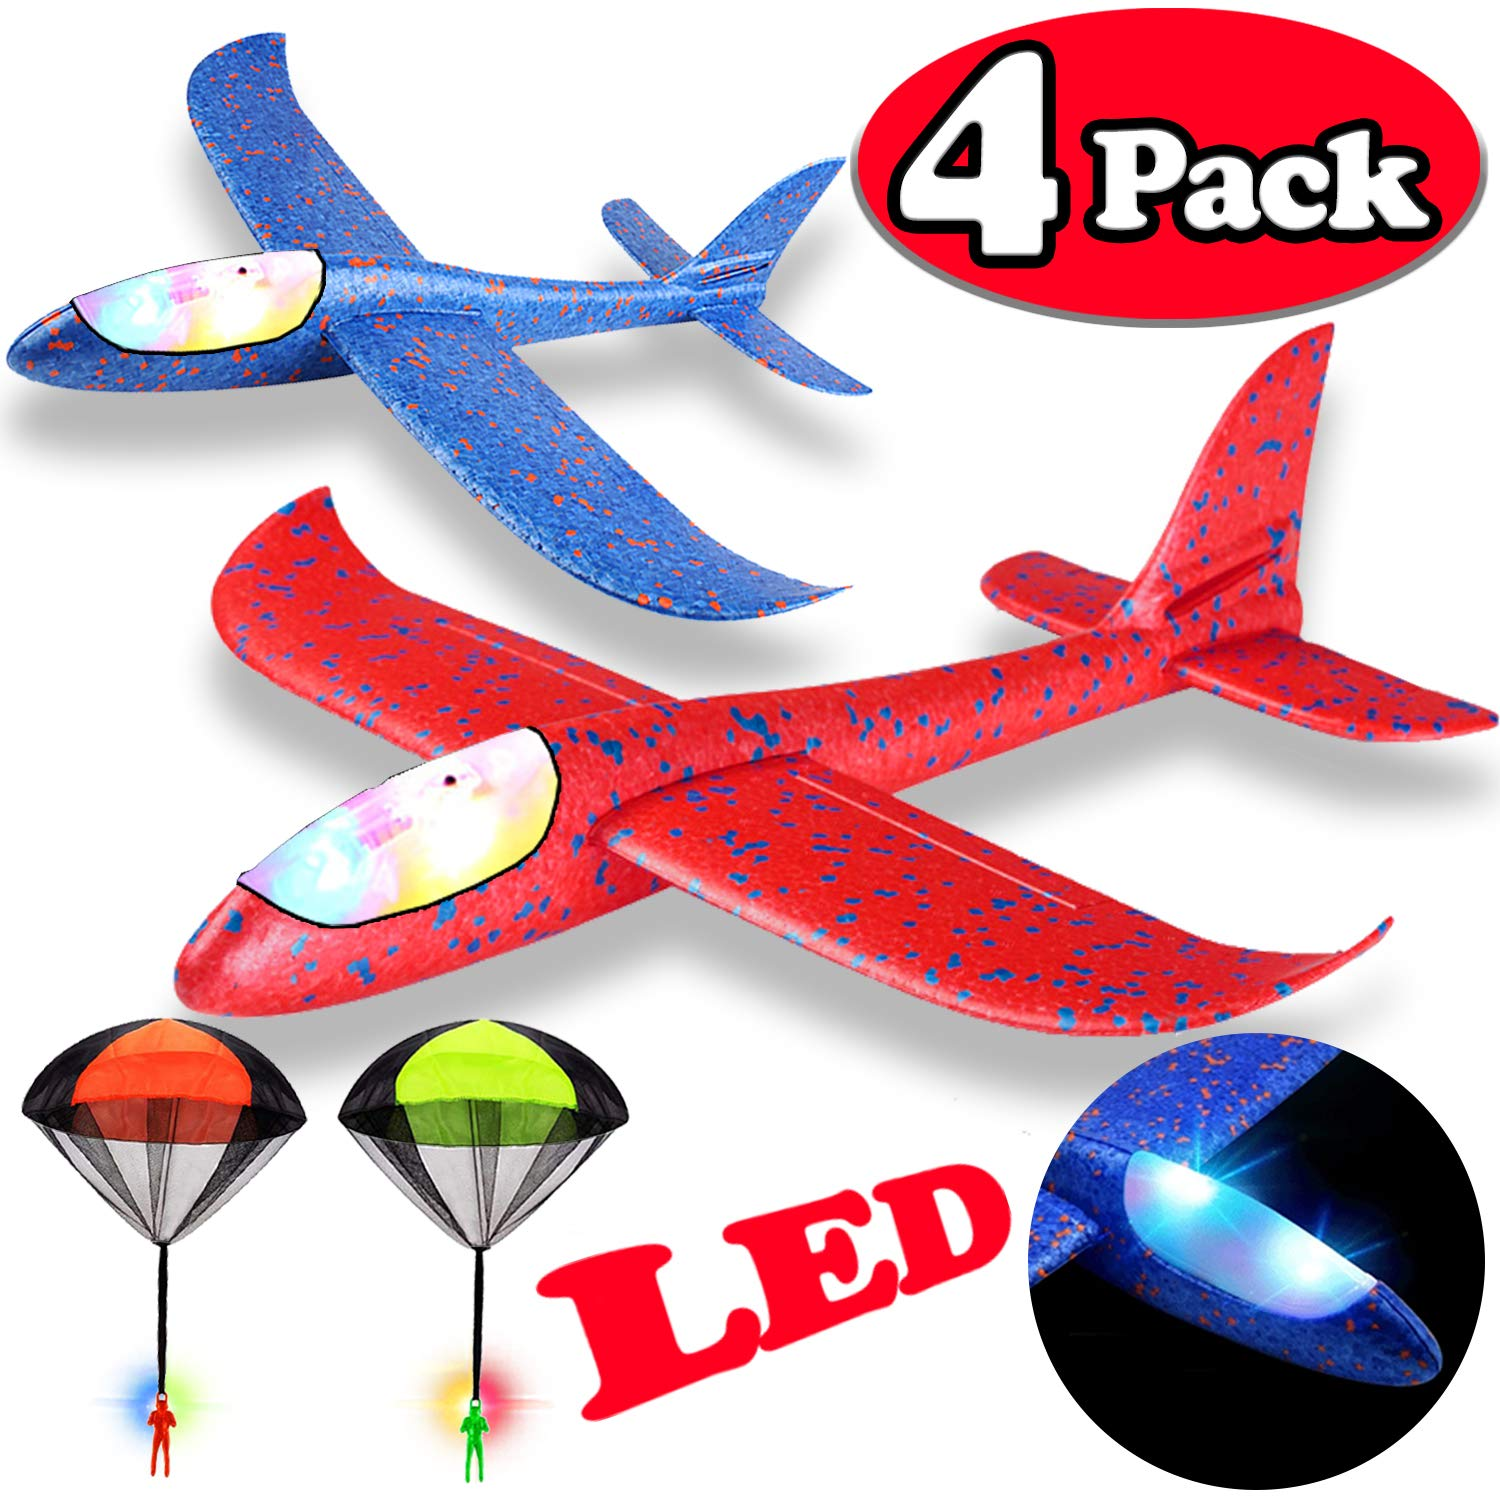 Airplane Toys, 2P 12'' LED Foam Airplane Glider Model Airplane Kits+2P Parachute Toys Children's Flying Toys Hand Throwing, Outdoor Sports Birthday Party Favors for Kids Boys Girls(Random Color)